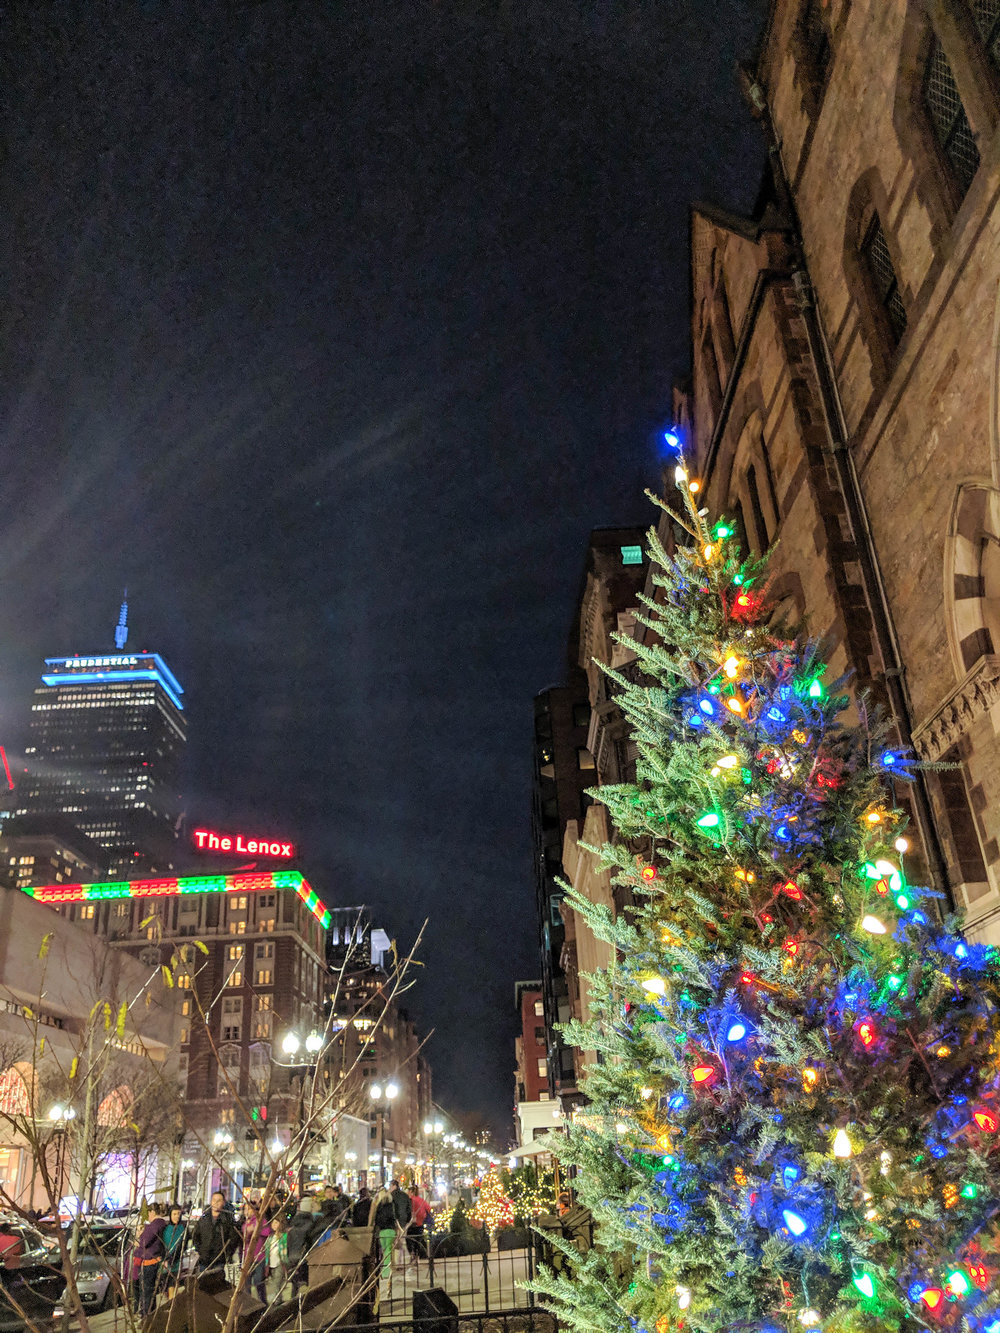 bri rinehart; boston; photography; back bay; Christmas tree; prudential center